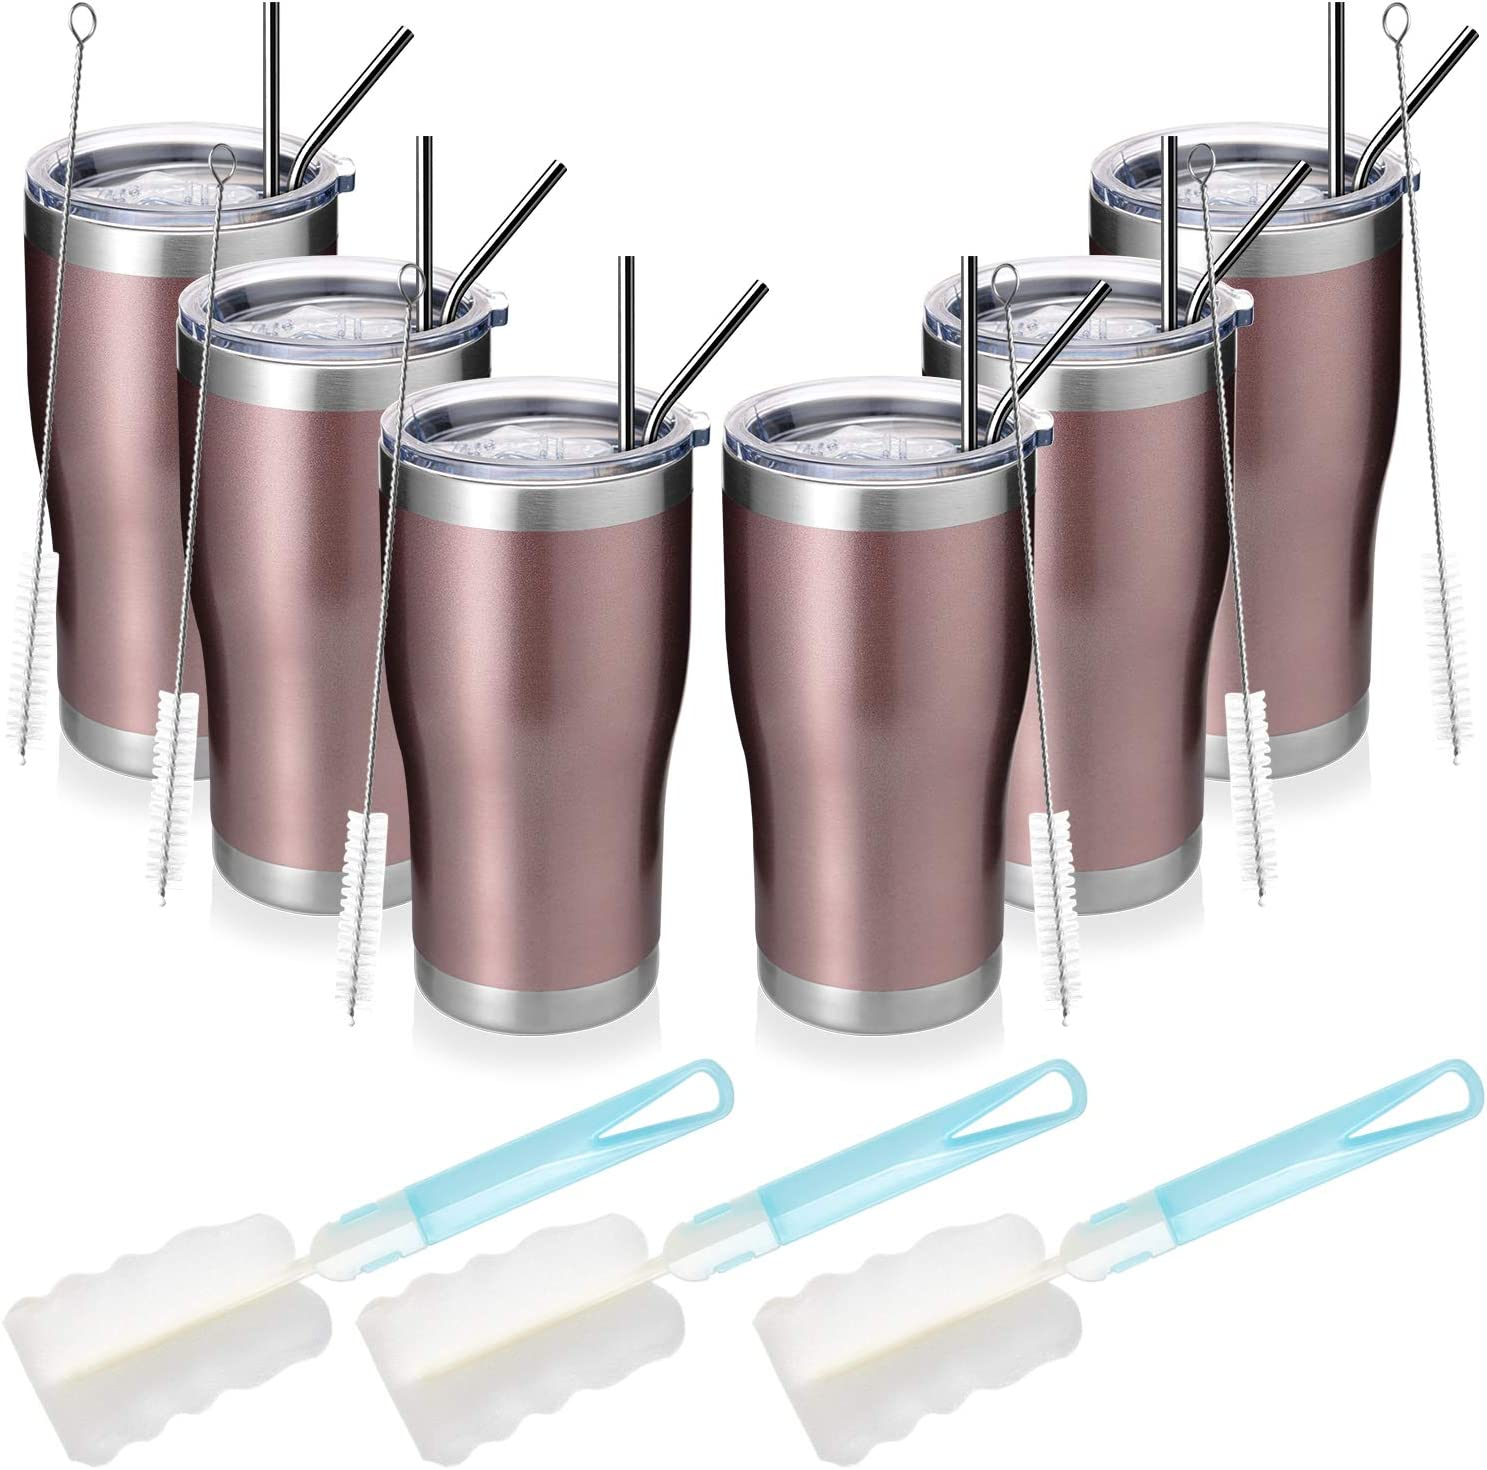 MANYHY 20oz Stainless Steel Insulated Tumbler San Jose Mall Max 86% OFF Pack Trave Bulk 6